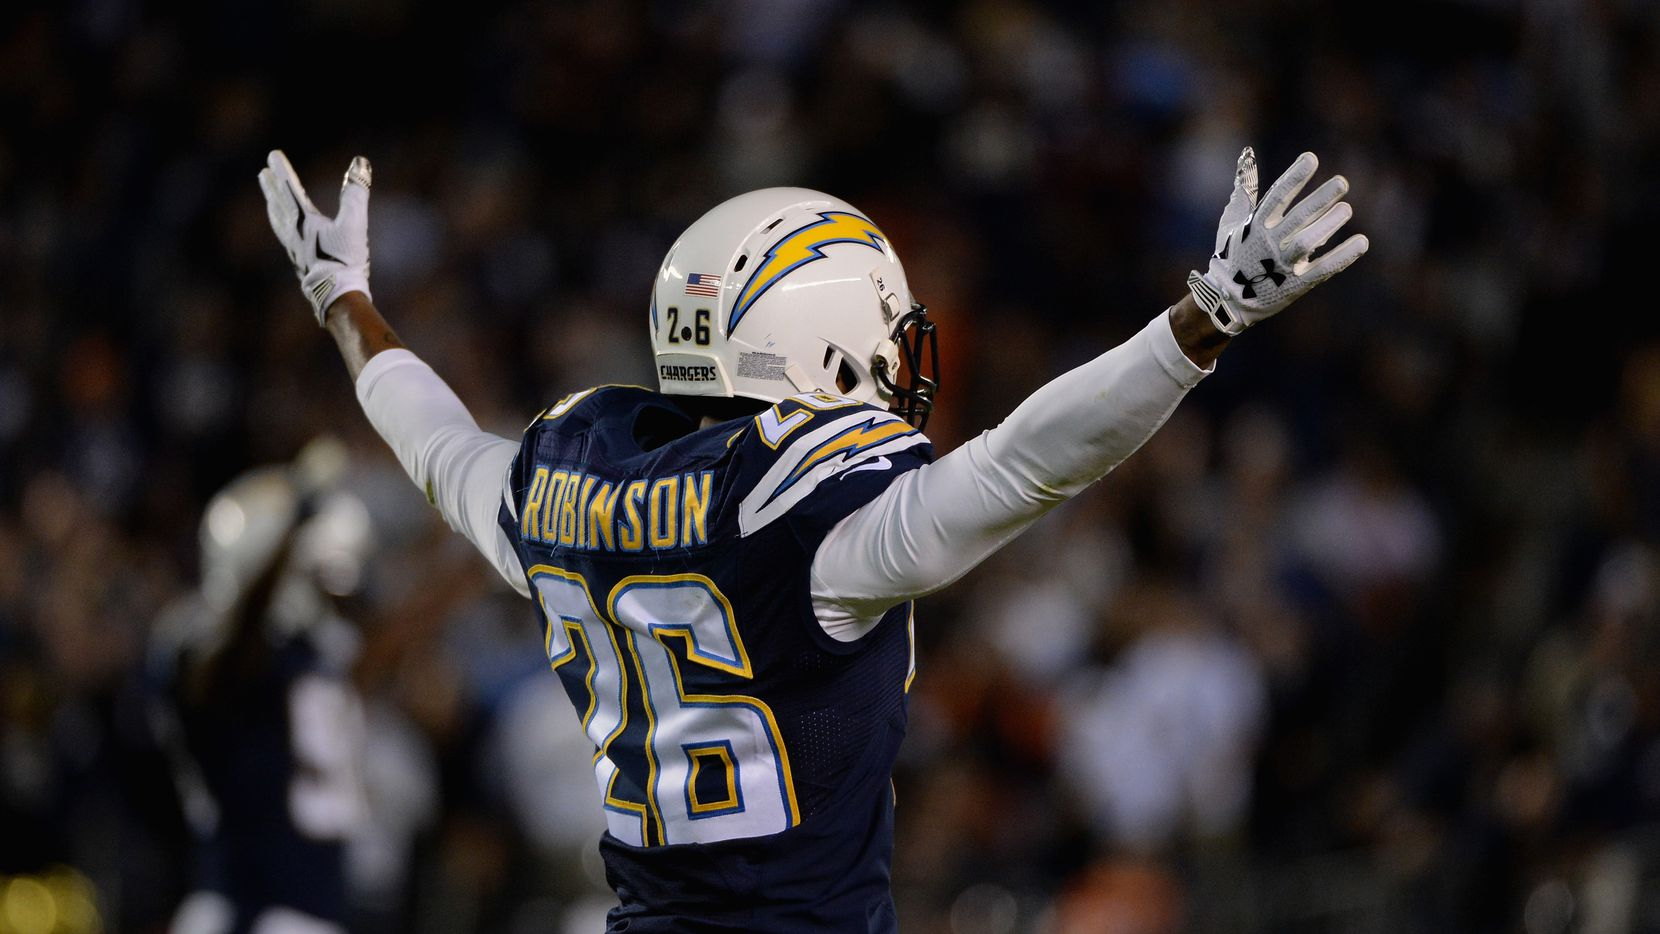 SAN DIEGO, CA - NOVEMBER 09:  Patrick Robinson #26 of the San Diego Chargers celebrates while playing the Chicago Bears at Qualcomm Stadium on November 9, 2015 in San Diego, California.  (Photo by Donald Miralle/Getty Images)